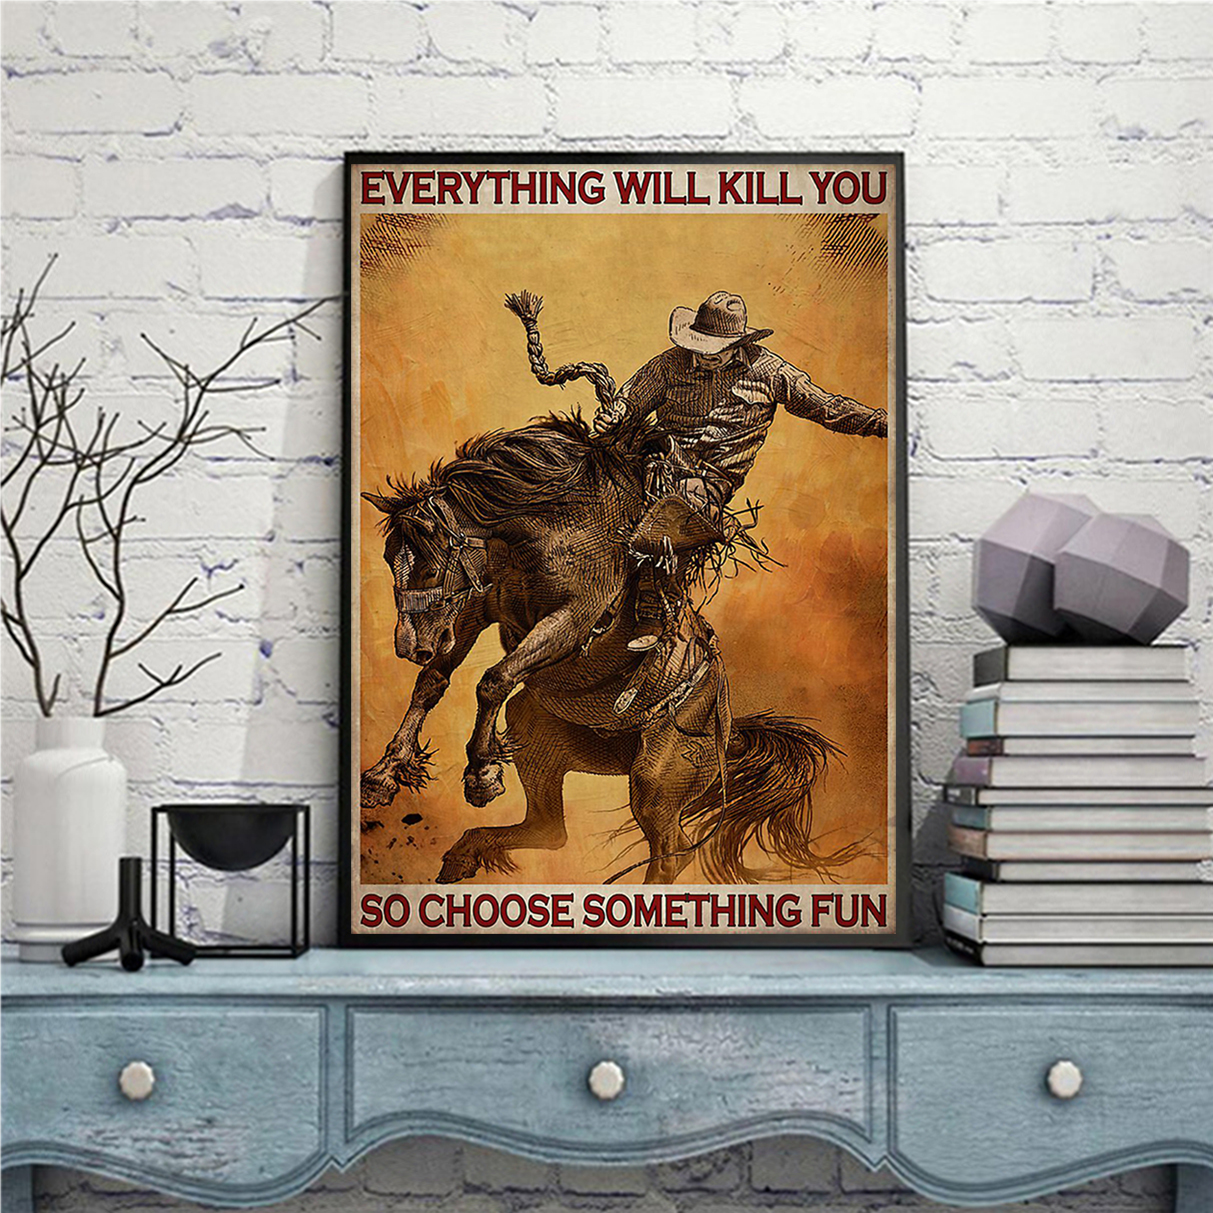 ROPING RODEO EVERYTHING WILL KILL YOU SO CHOOSE SOMETHING FUN POSTER A2